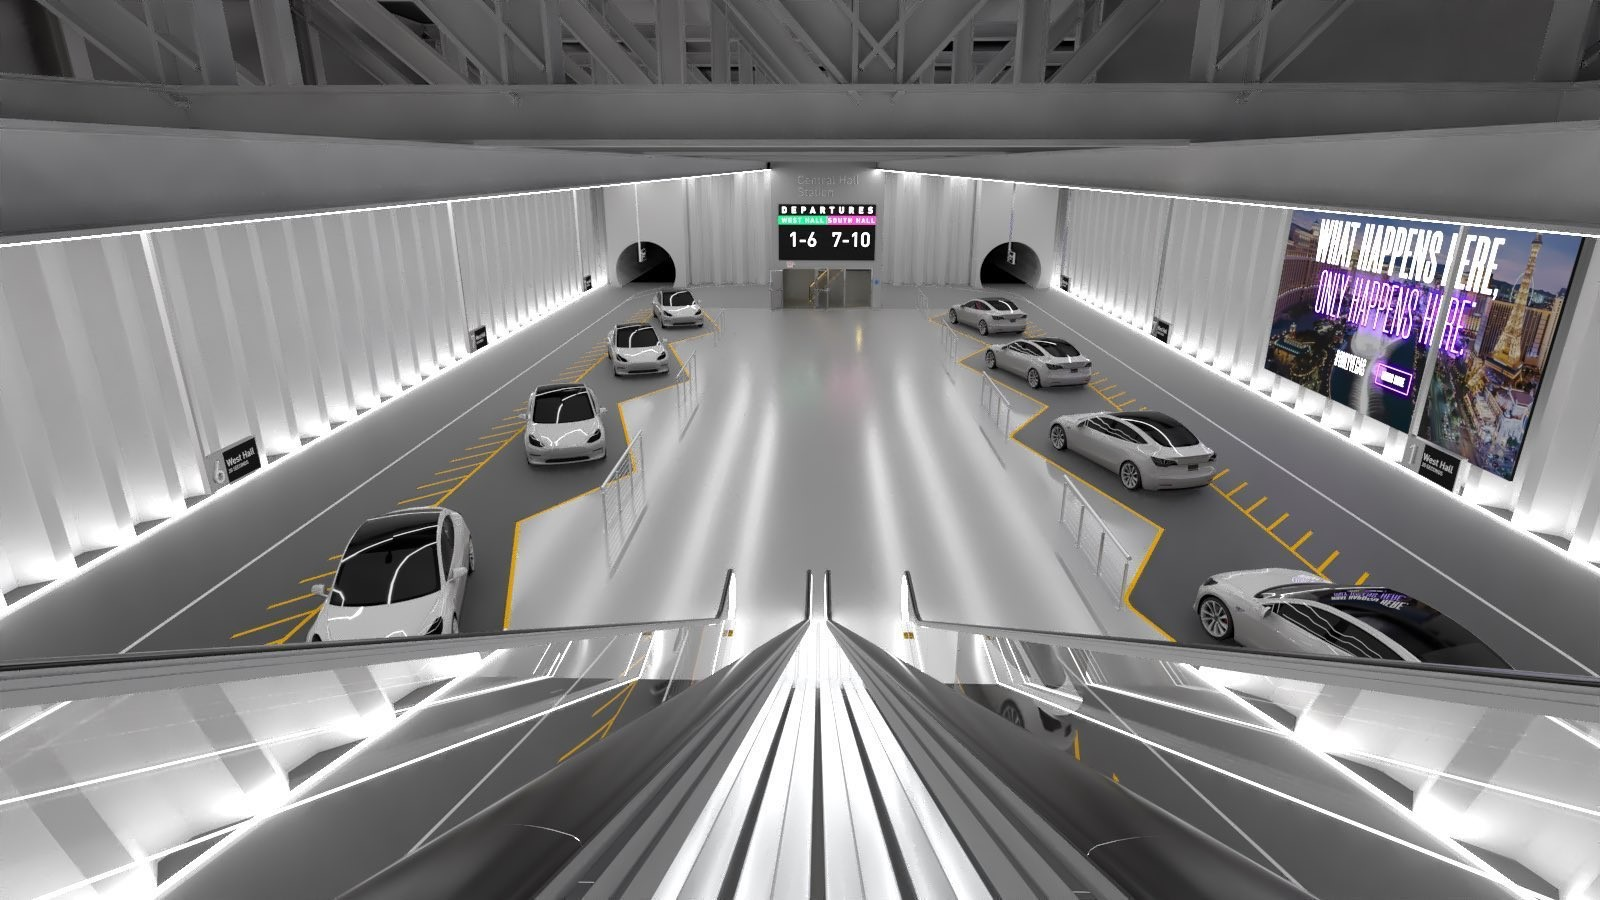 The People Mover- Las Vegas Convention Center Loop station, and its private shuttles revealed by Elon Musk - Sheet1